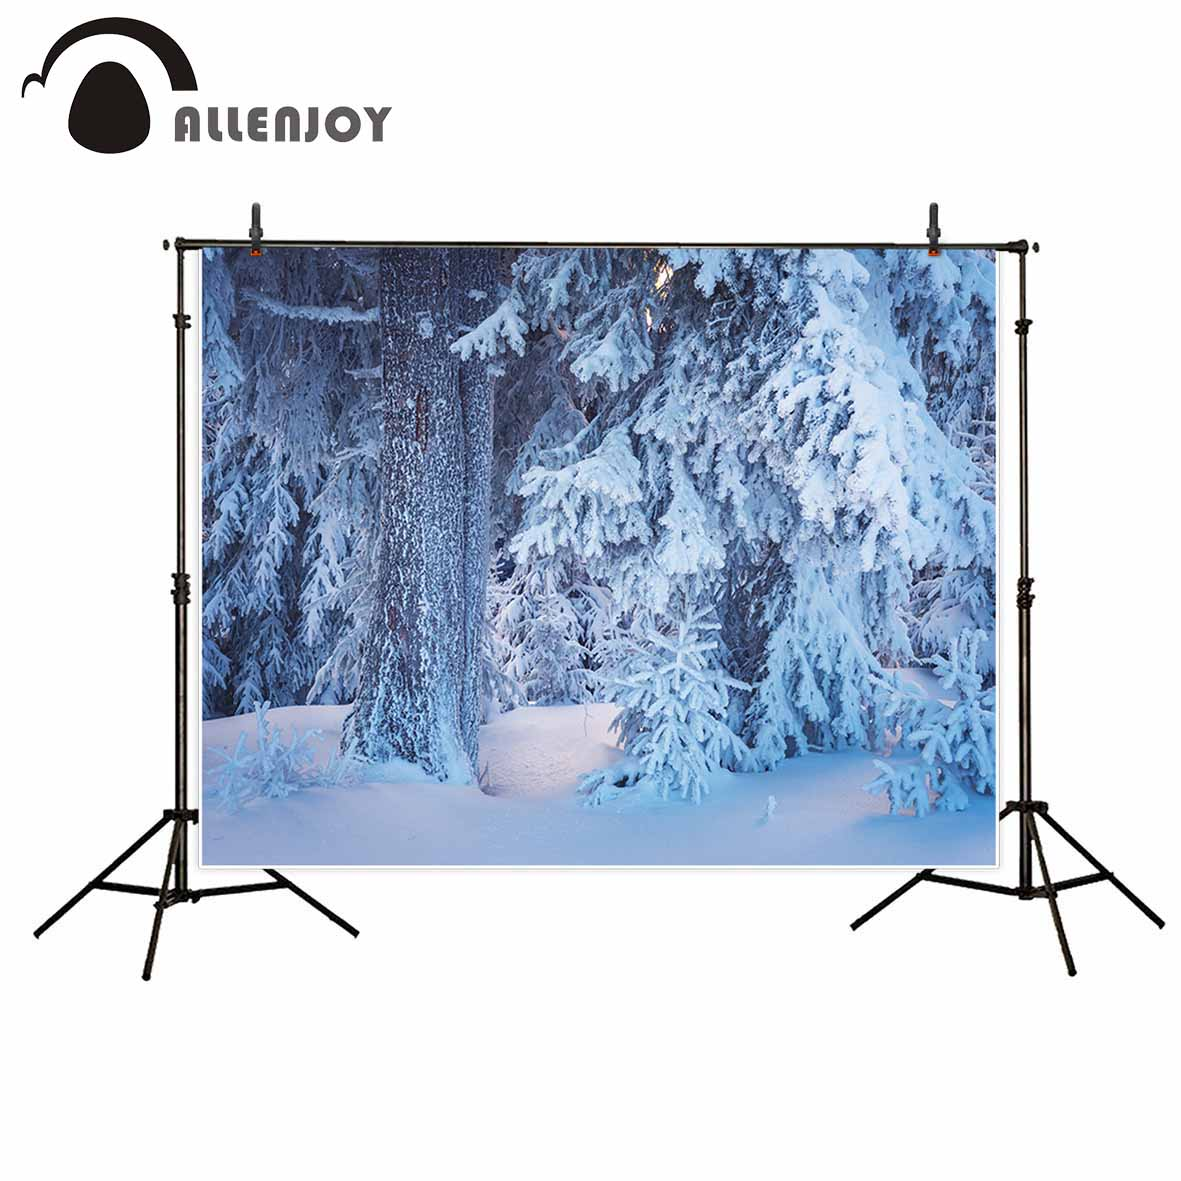 Allenjoy photography background Tree snow winter cedar life hope professional festival camera fotografica backdrop photographic